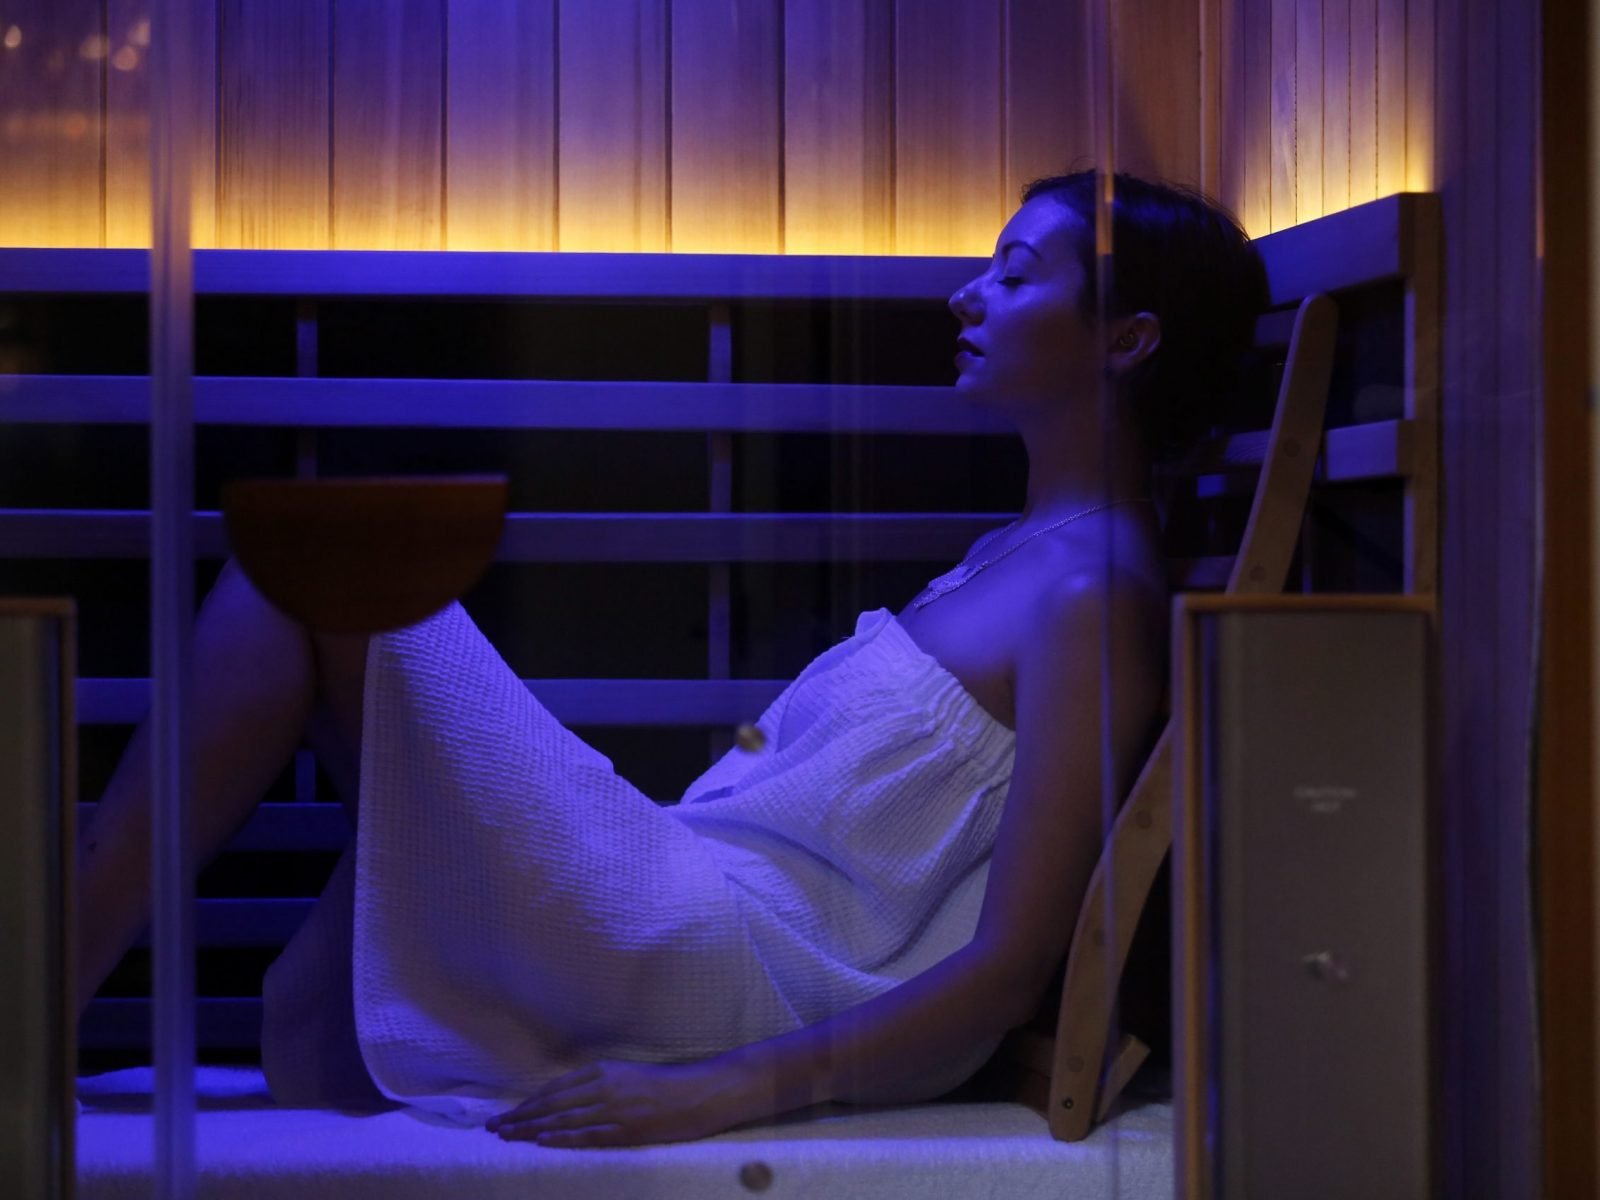 Sarah Buonocore of Granby uses the infrared sauna, which is said to assist with detoxification, relaxation, burning calories, pain relief, anti-aging, skin purification, cell health and improved circulation, at Thelo Home and Modern Wellness June 13, 2018 in Northampton.